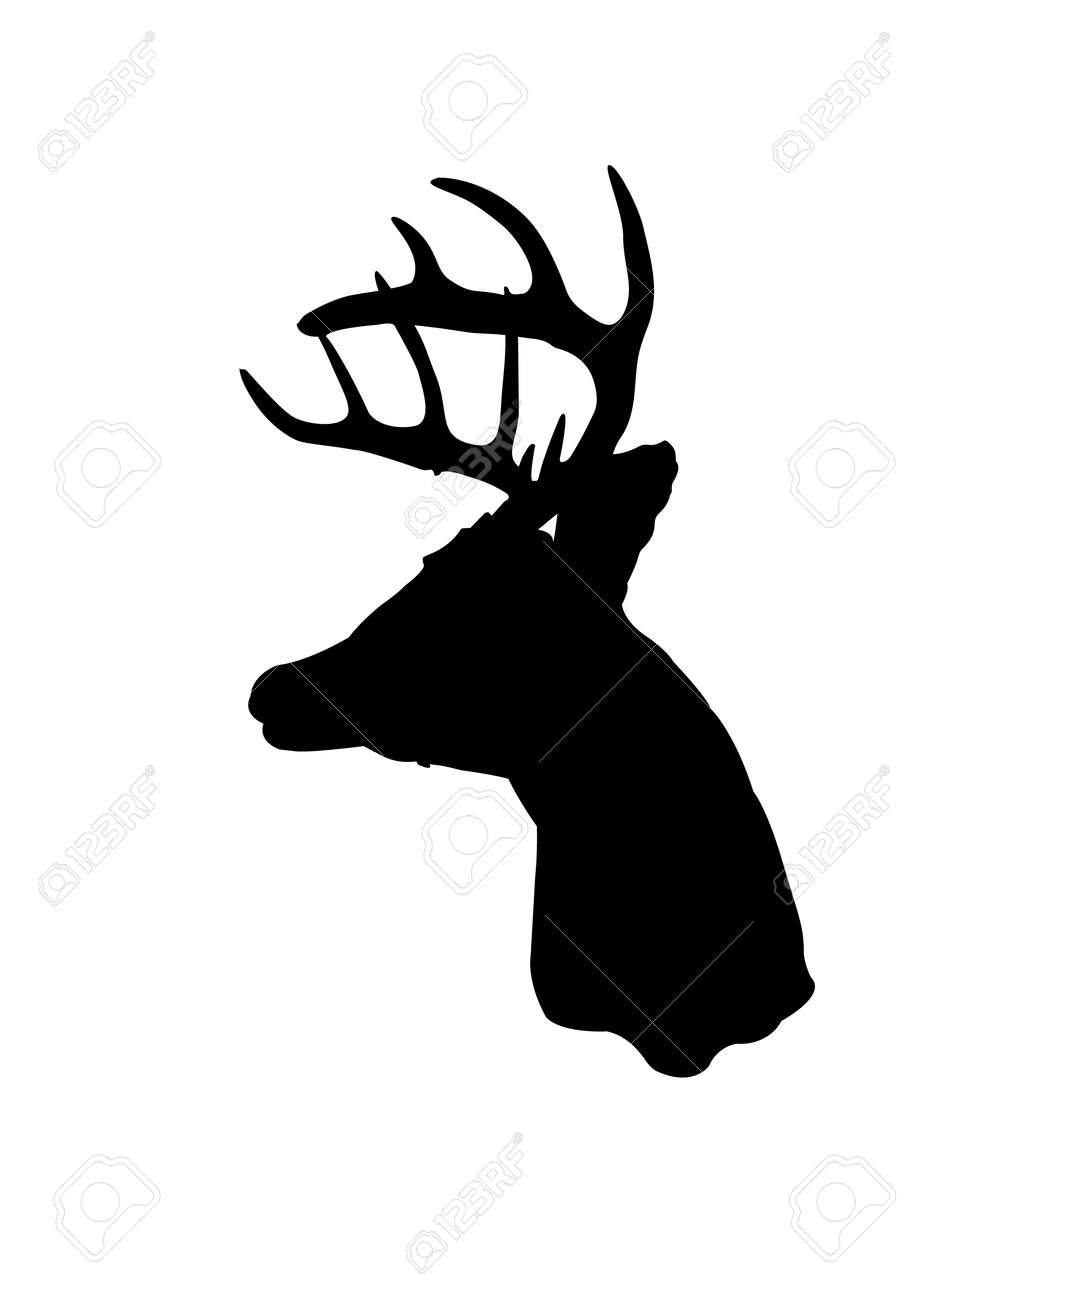 black silhouette of a whitetail deer clip art royalty free cliparts rh 123rf com white tailed deer clipart white tailed deer clipart